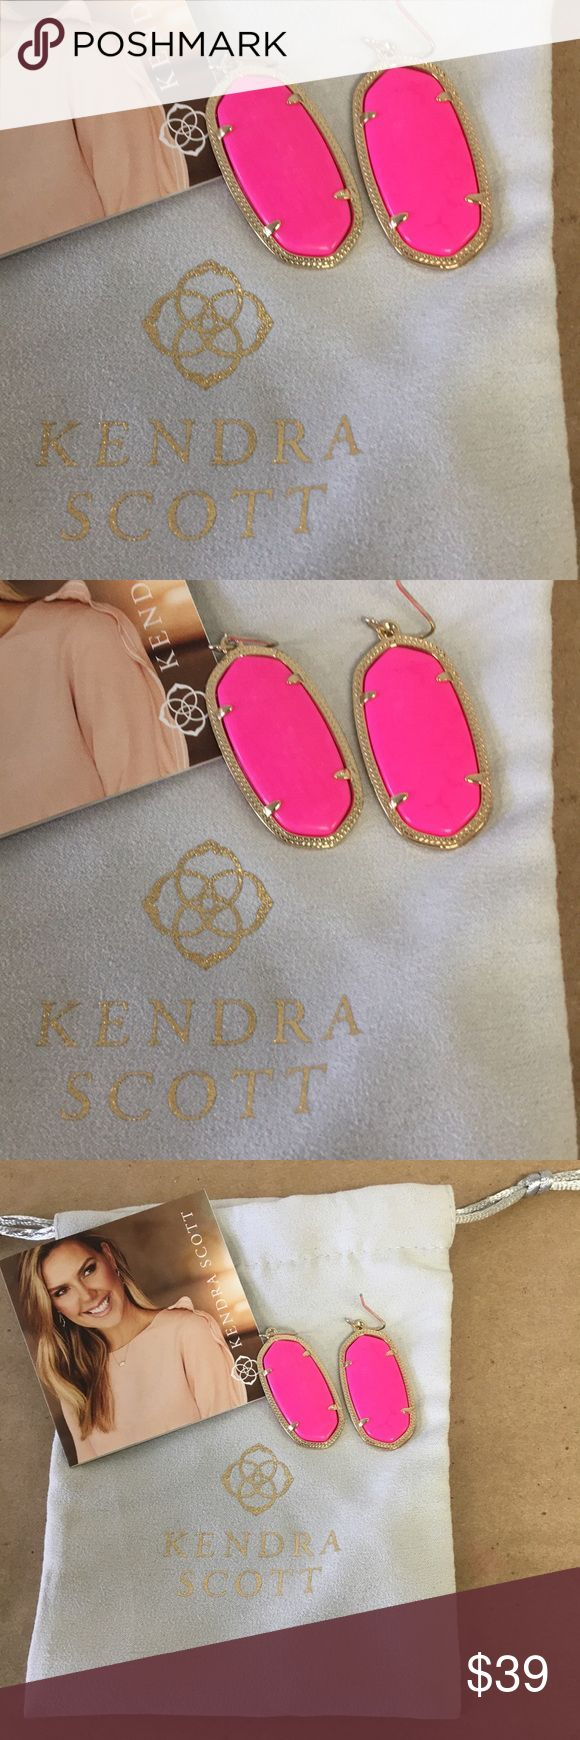 Kendra Scott Dani Earrings in Gold & Hot Pink Kendra Scott Dani Earrings in Gold & Hot Pink! Inventory #  6033-20 Everything we sell is 100% guaranteed authentic! We list dozens of items every day, so check our other listings out! We are Meta Exchange, a resale store in Baton Rouge, LA! Sorry, no trades. REASONABLE offers will be considered. We ship same/next day. Thanks! Follow us: FB metaexchange  IG meta225 Kendra Scott Jewelry Earrings